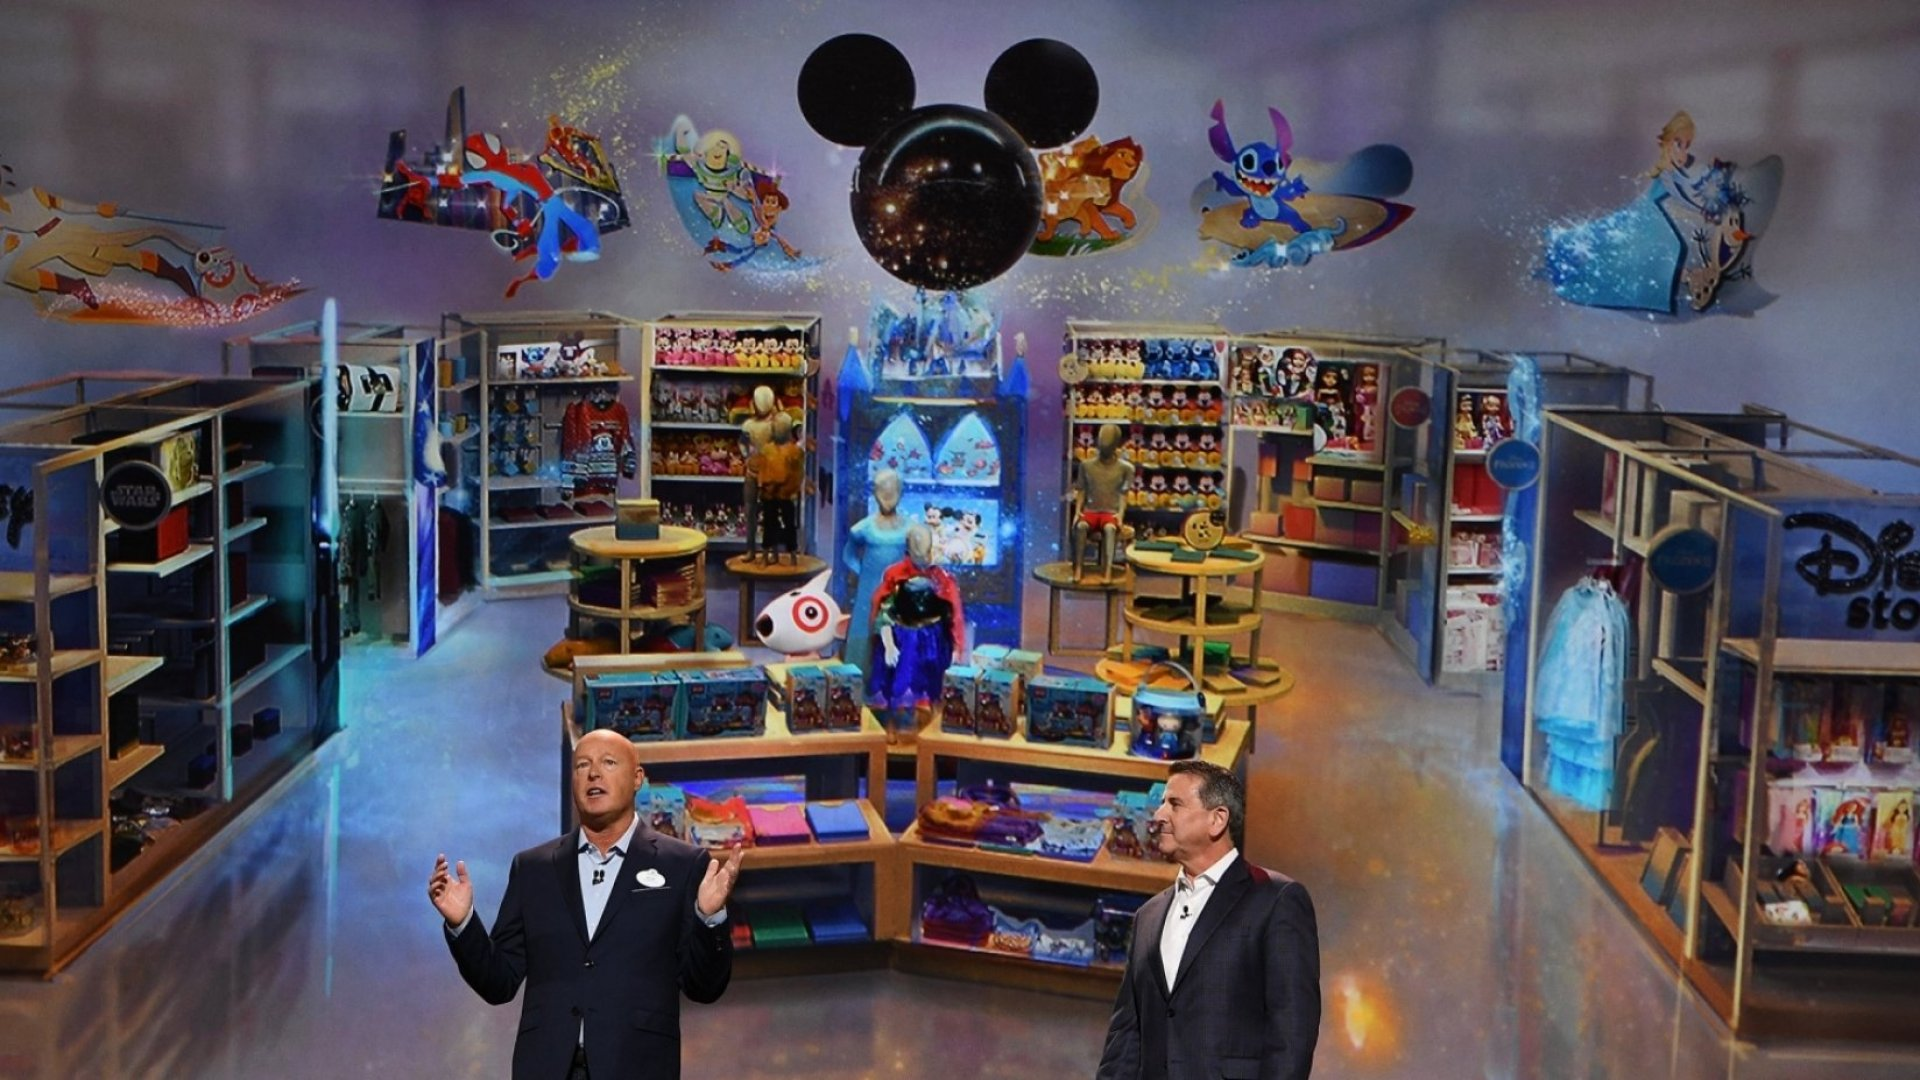 Target's Partnership With Disney Is Brilliant (It's Bad News for Amazon, Though)